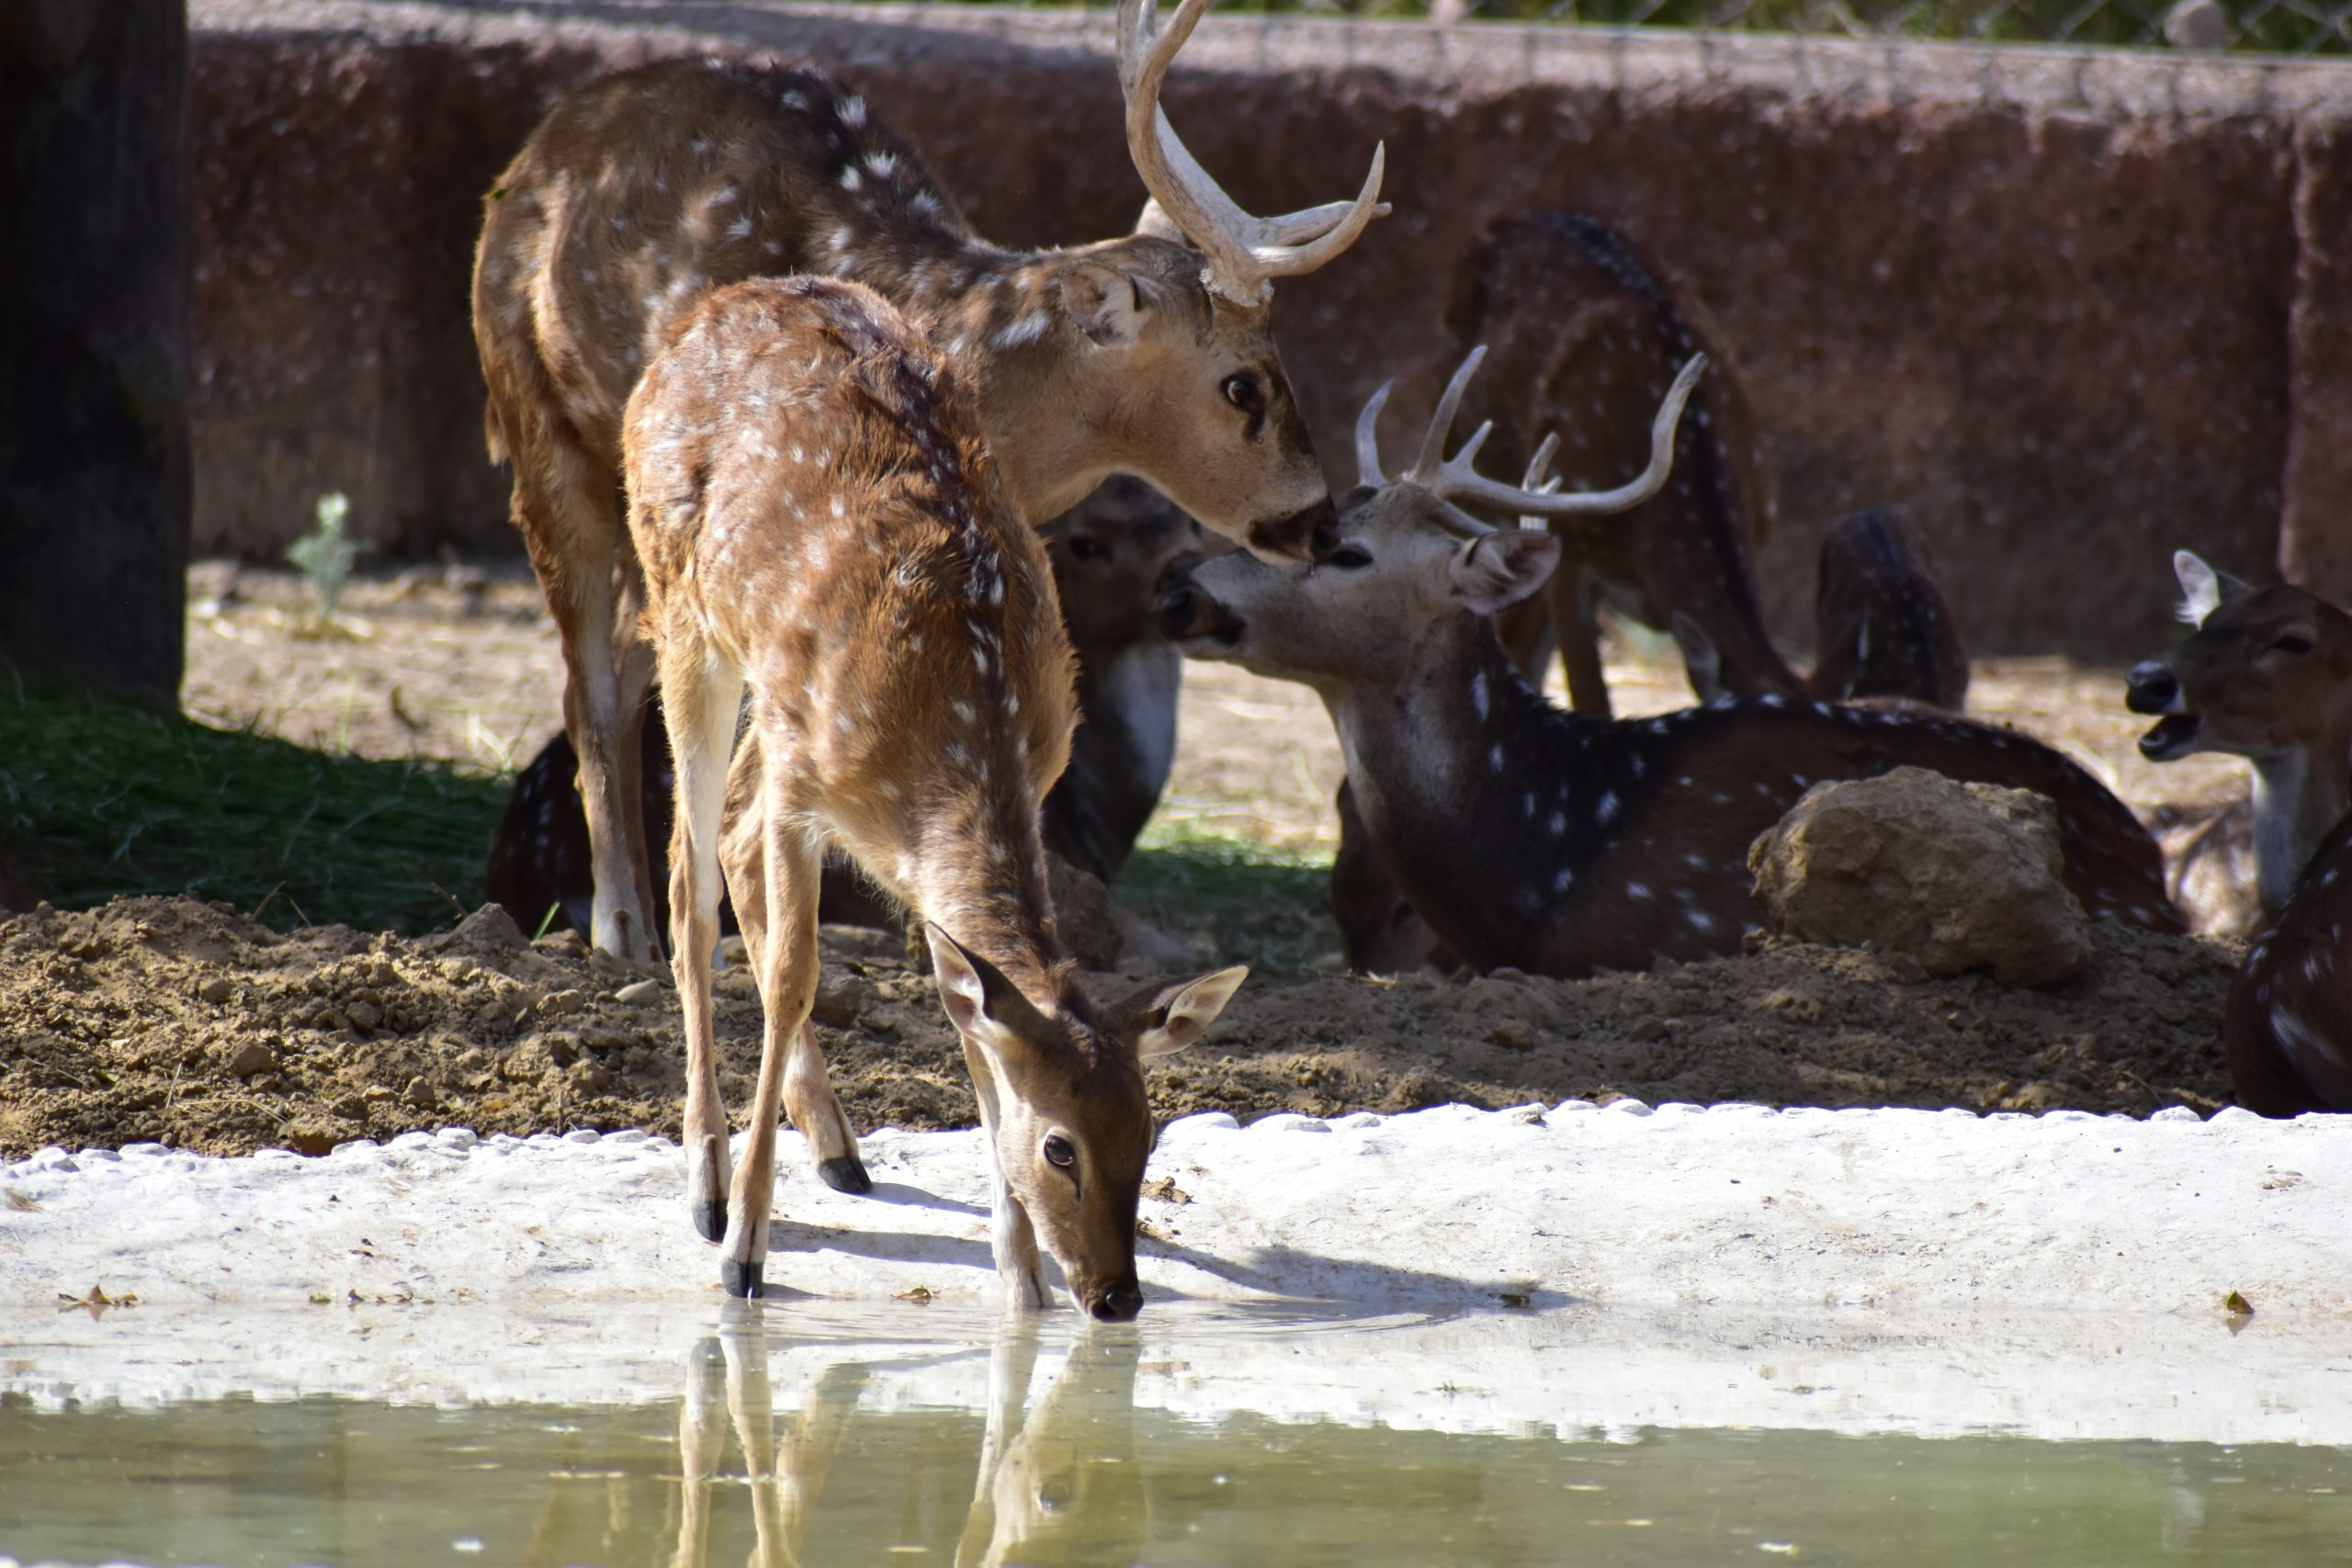 Deer drinking water from the river